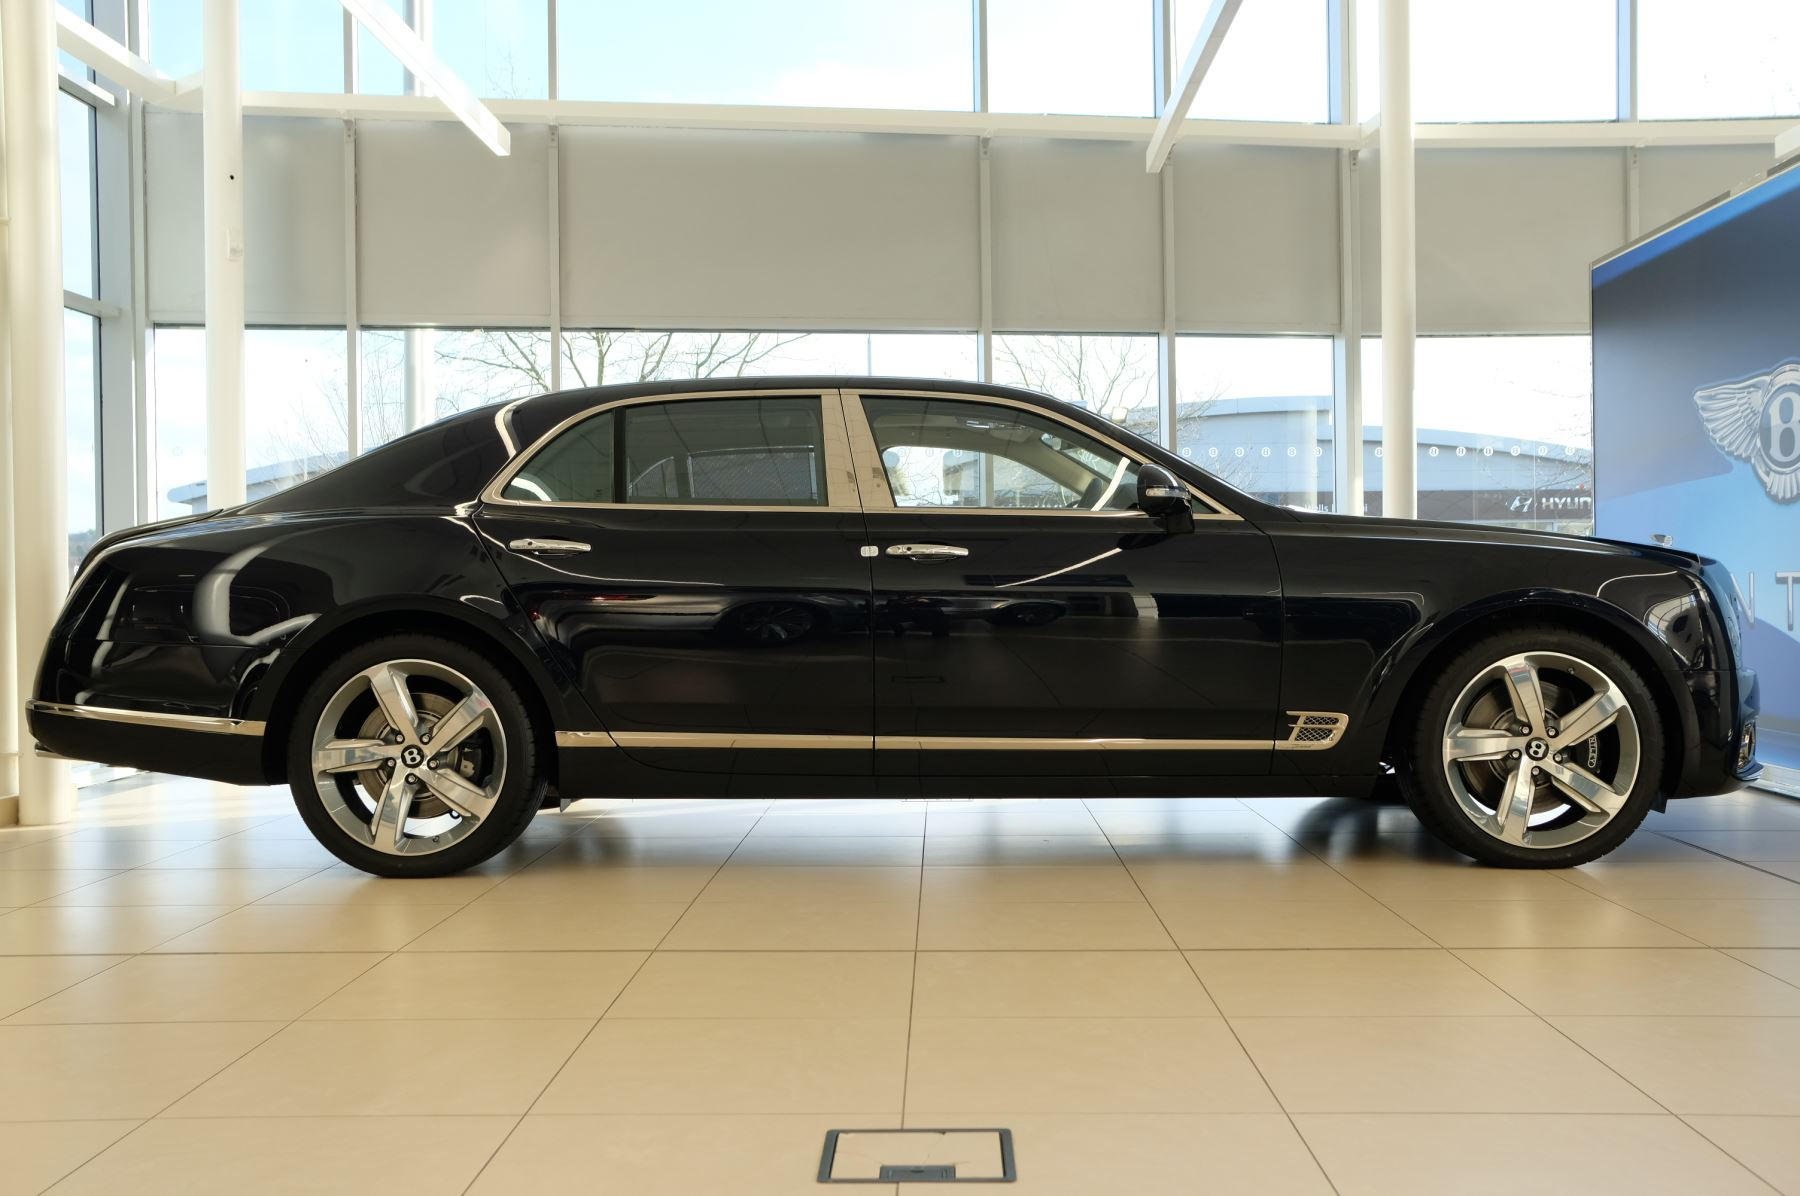 Bentley Mulsanne Speed 6.8 V8 Speed - Speed Premier, Entertainment and Comfort Specification image 3